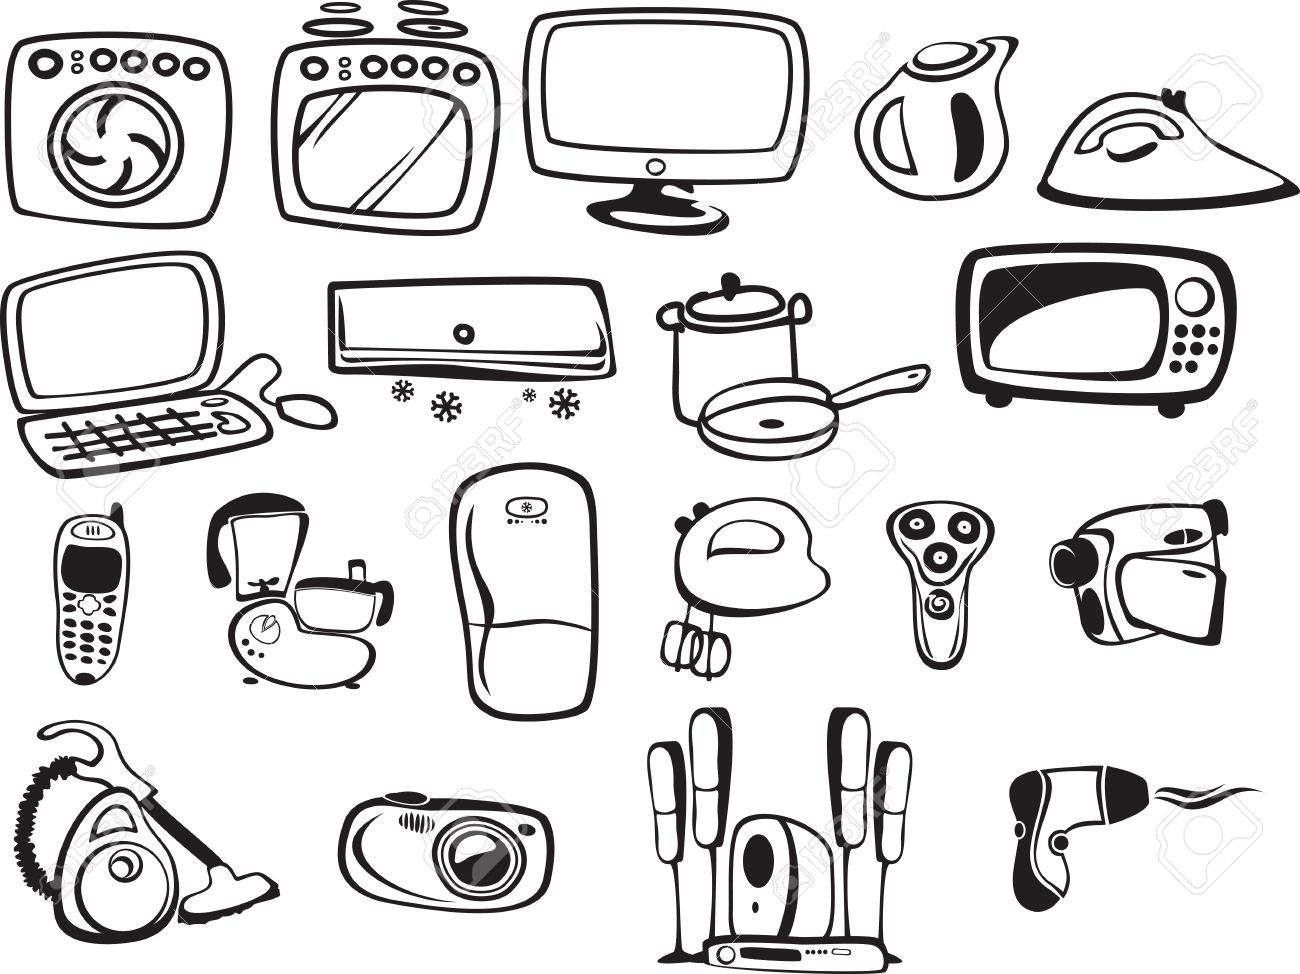 Symbols of household appliances and electronics royalty free